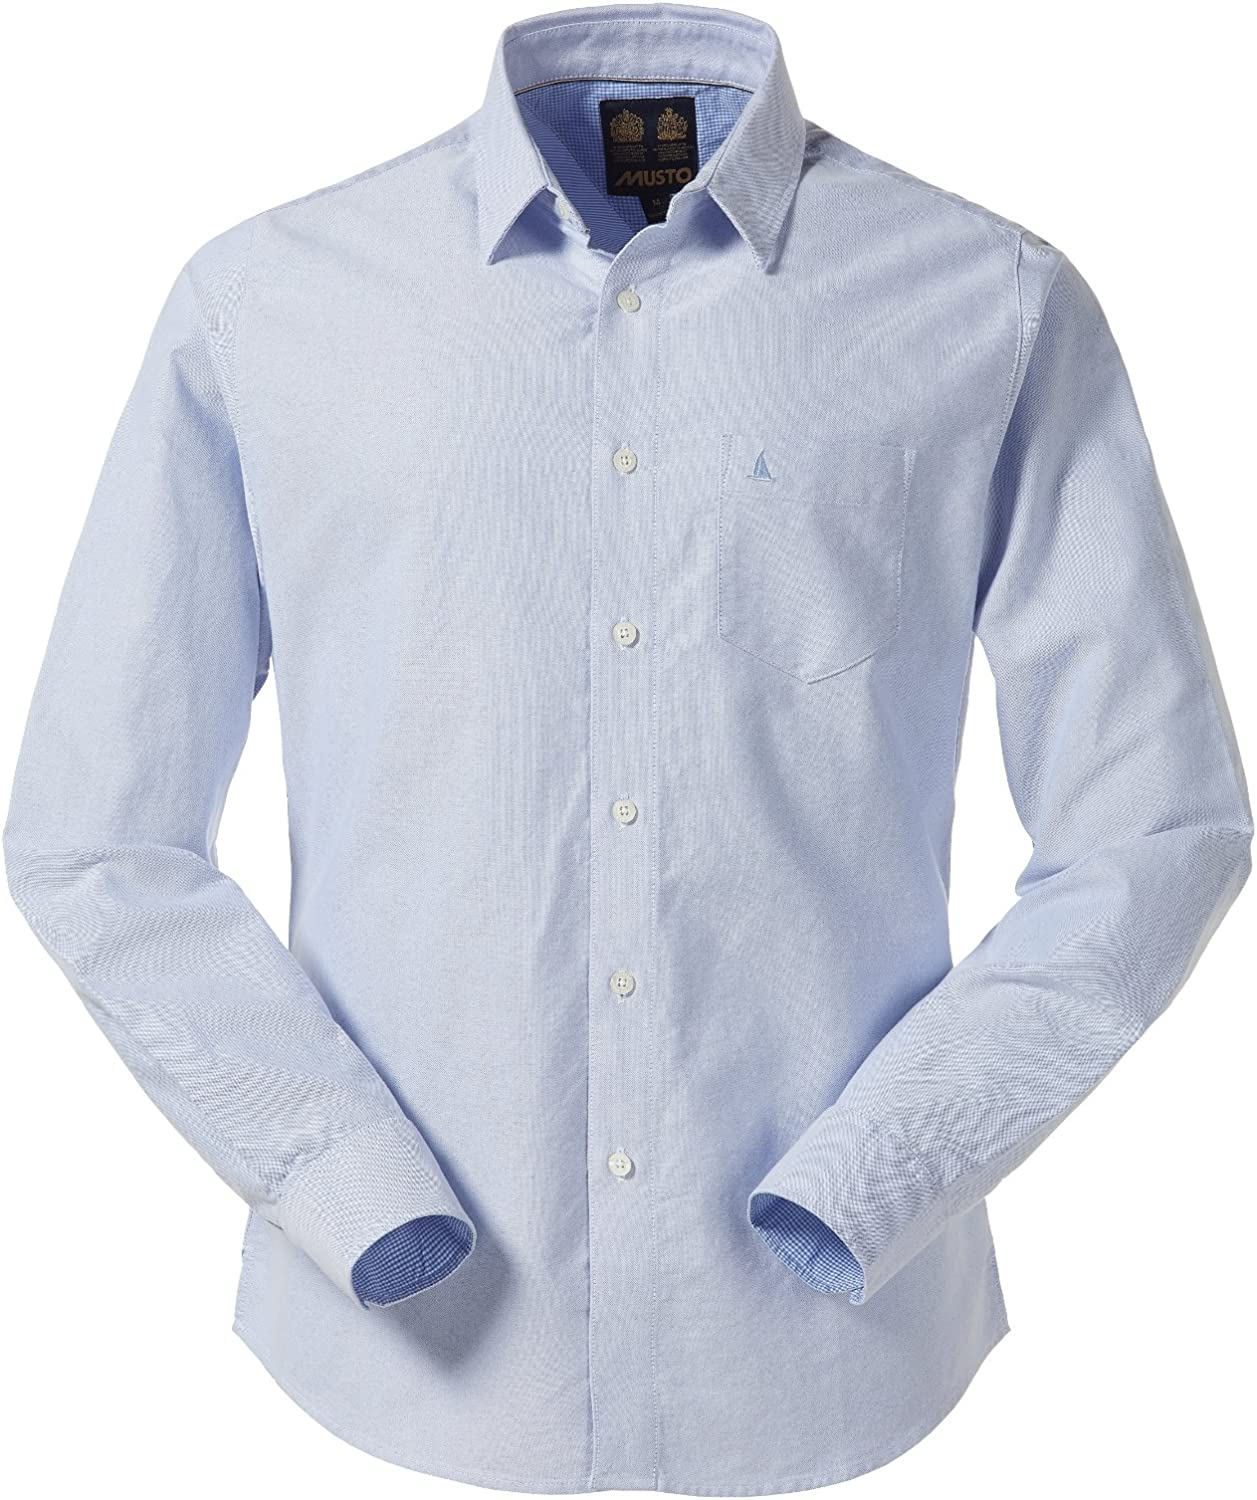 Musto Aiden Oxford Camiseta – Pale Blue Tamaño L: Amazon.es: Deportes y aire libre